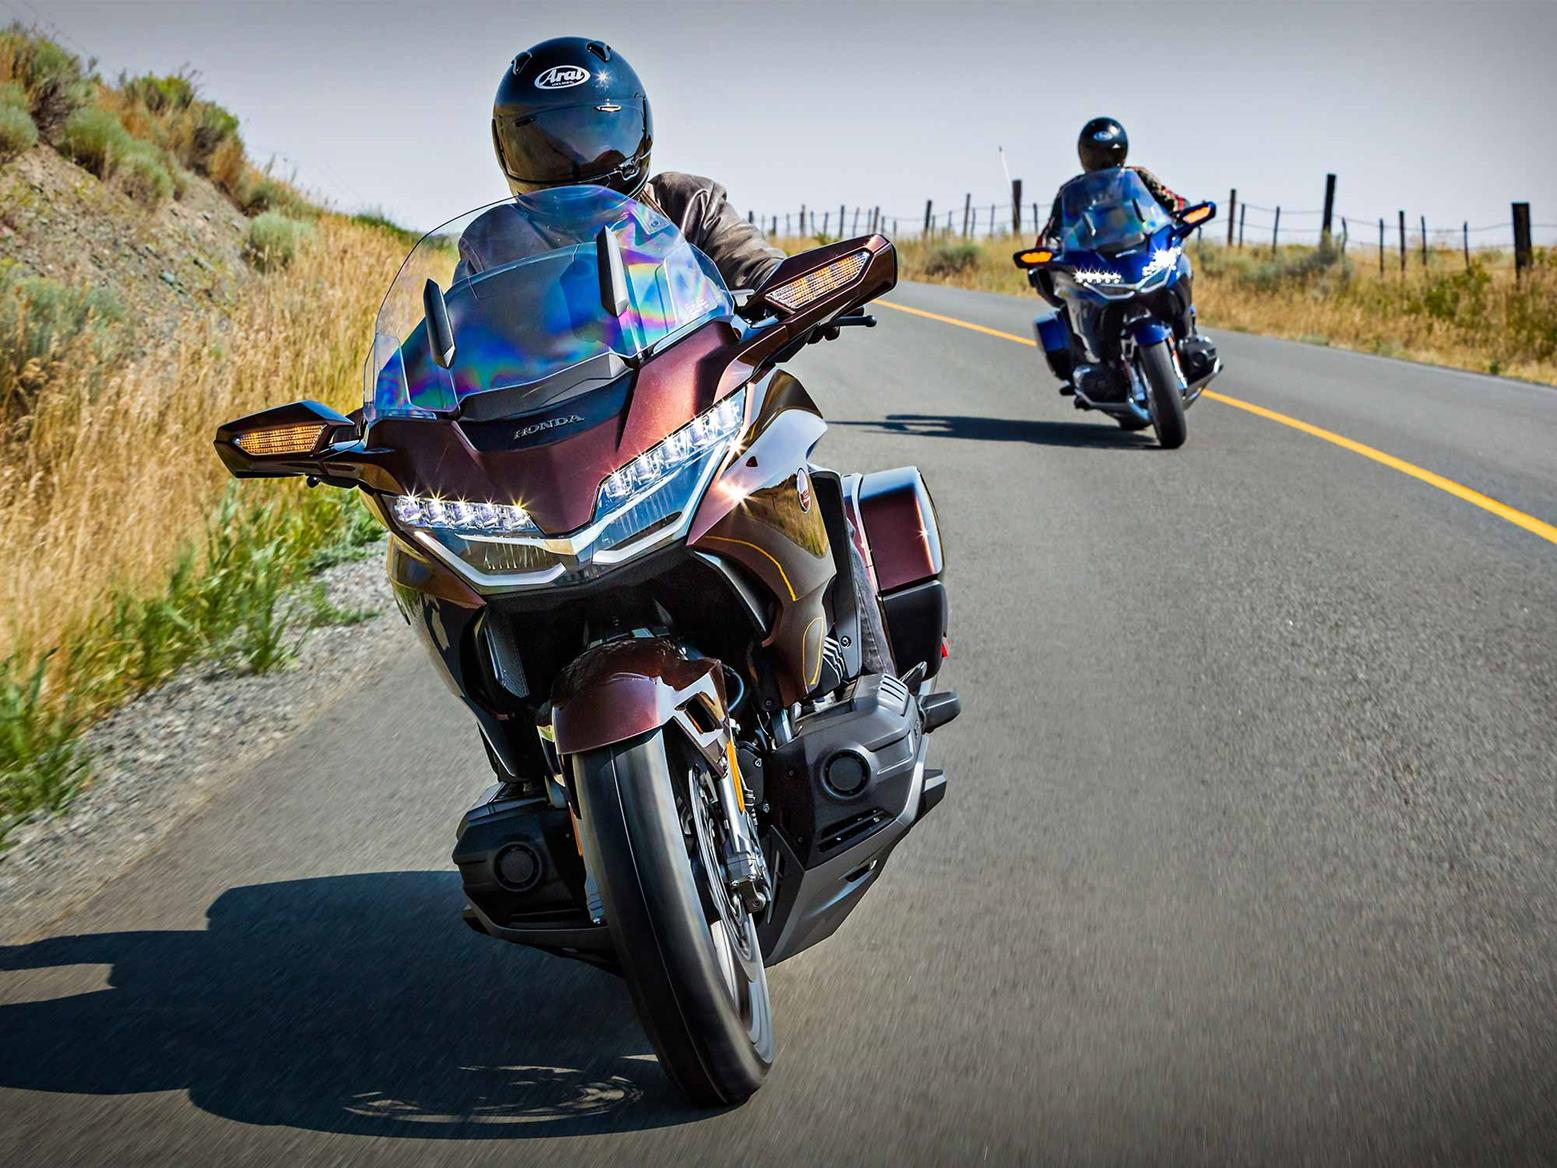 Group riding on the Honda GL1800 Gold Wing DCT